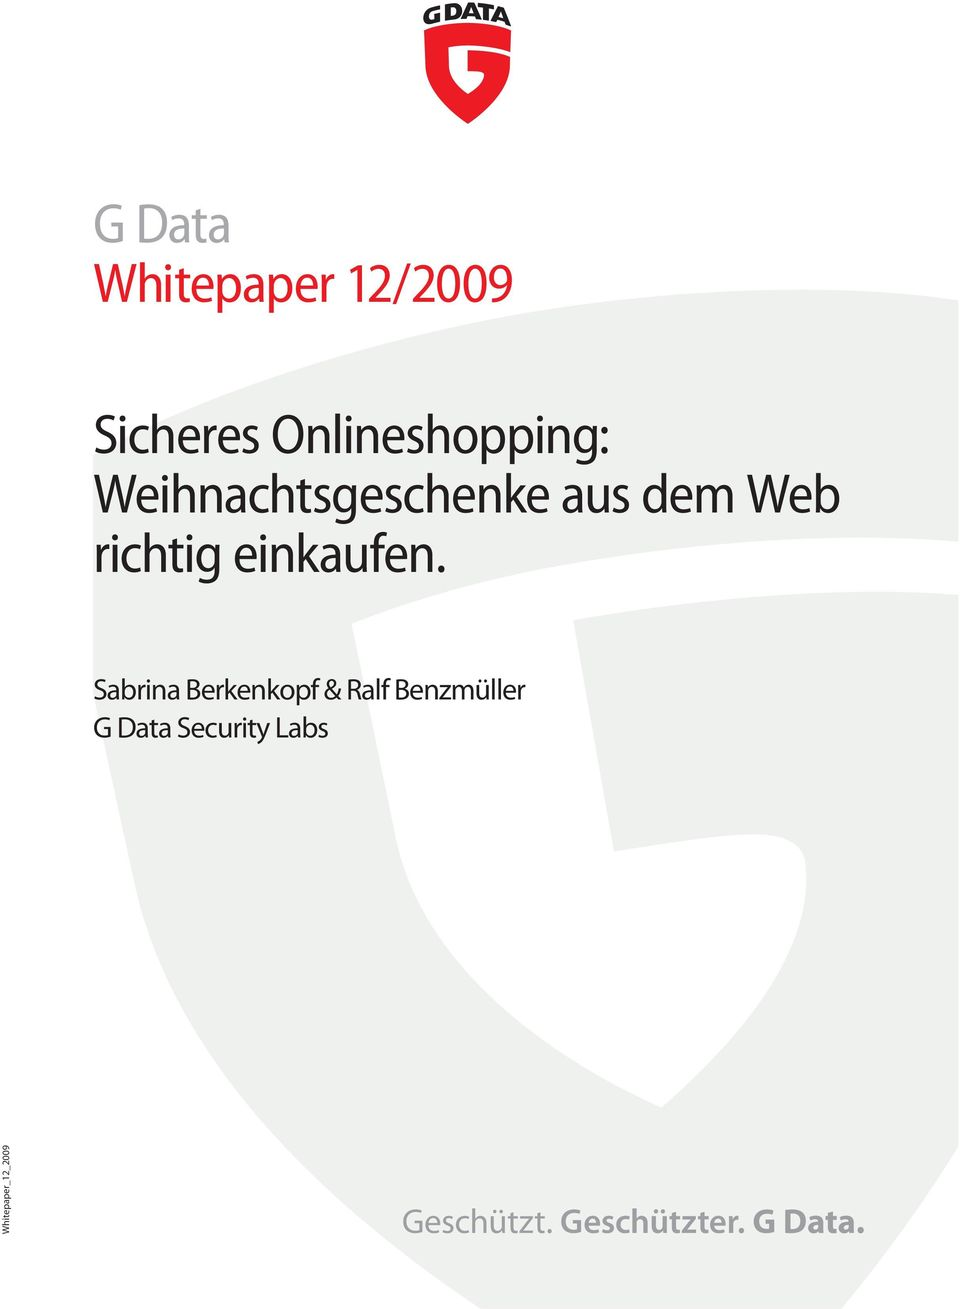 Sabrina Berkenkopf & Ralf Benzmüller G Data Security